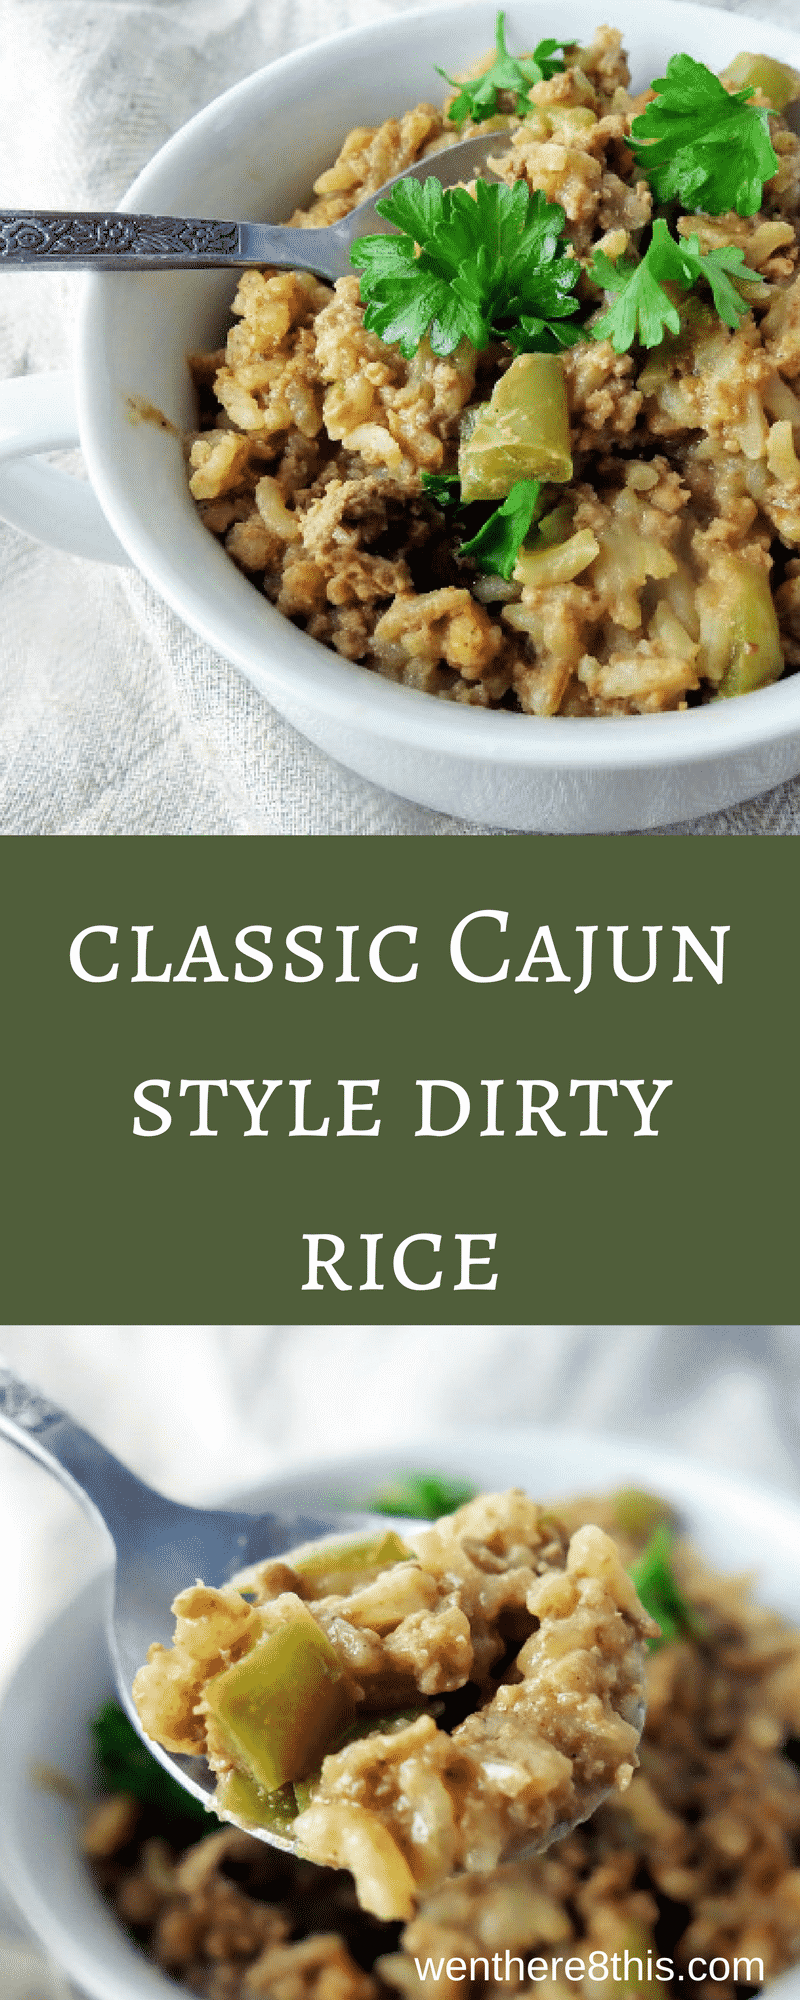 Learn how to make this classic Cajun style dirty rice from scratch - it\'s easy and delicious! Only 30 minutes to make and packed full of rich, spicy flavor!dirty rice recipe | cajun style dirty rice easy | new orleans dirty rice recipe | cajun recipes | easy dirty rice | creole dirty rice | creole recipe | the best easy dirty rice | easy dirty rice recipes